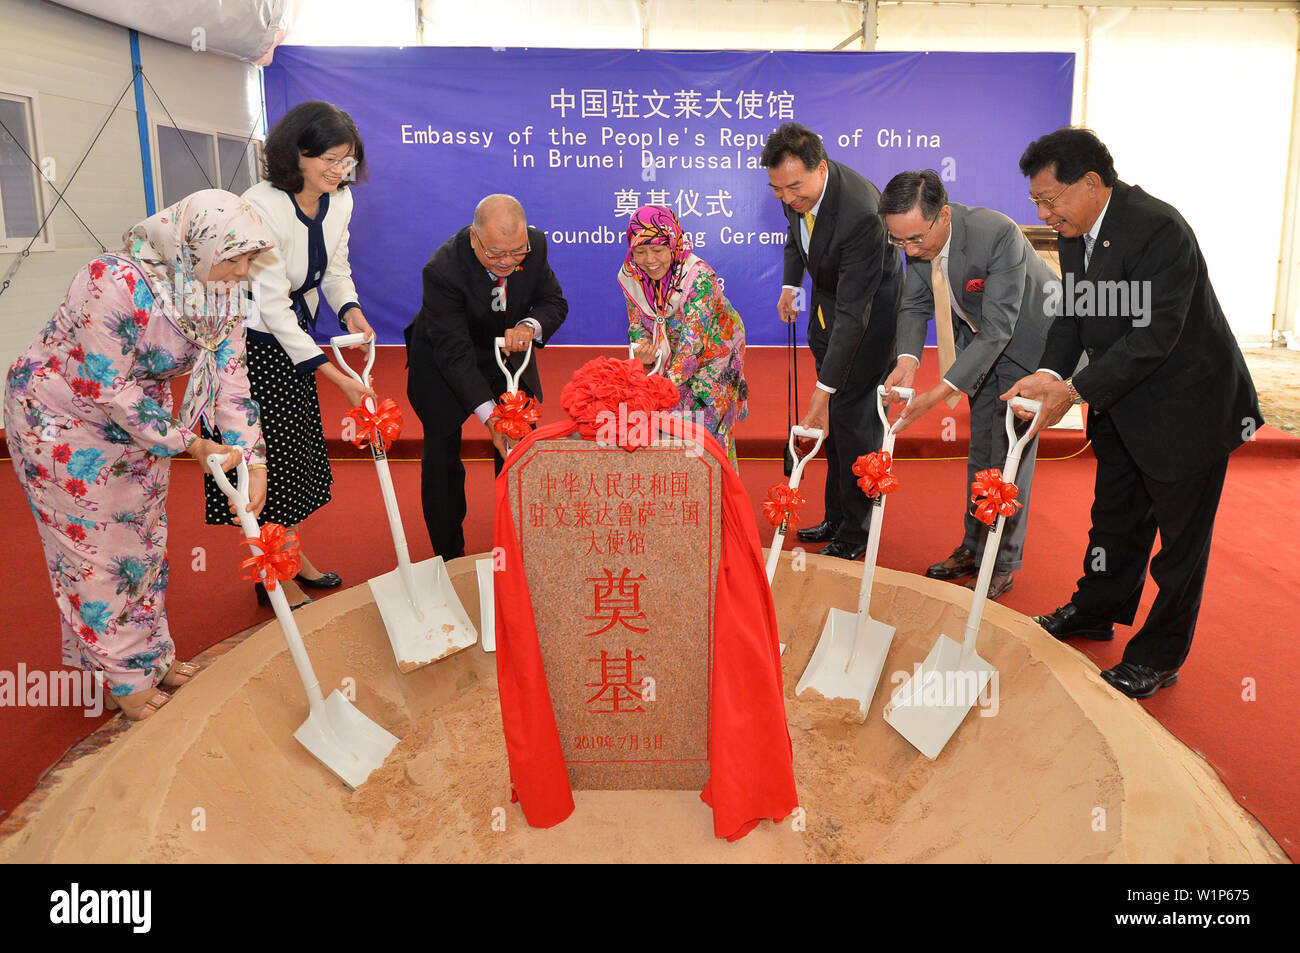 (190703) -- BANDAR SERI BEGAWAN, July 3, 2019 (Xinhua) -- Chinese Vice Foreign Minister Luo Zhaohui (3rd R) and Princess Hajah Masna (4th L), Brunei's Ambassador at-Large at the Ministry of Foreign Affairs, attend the ground-breaking ceremony for a new Chinese embassy in Bandar Seri Begawan, Brunei, July 3, 2019. Once completed, the new embassy premises will cover an area of more than 20,000 square meters, including embassy office building, ambassador residence, consular office, staff apartments and ancillary buildings. After China and Brunei established diplomatic relations in 1991, the - Stock Image